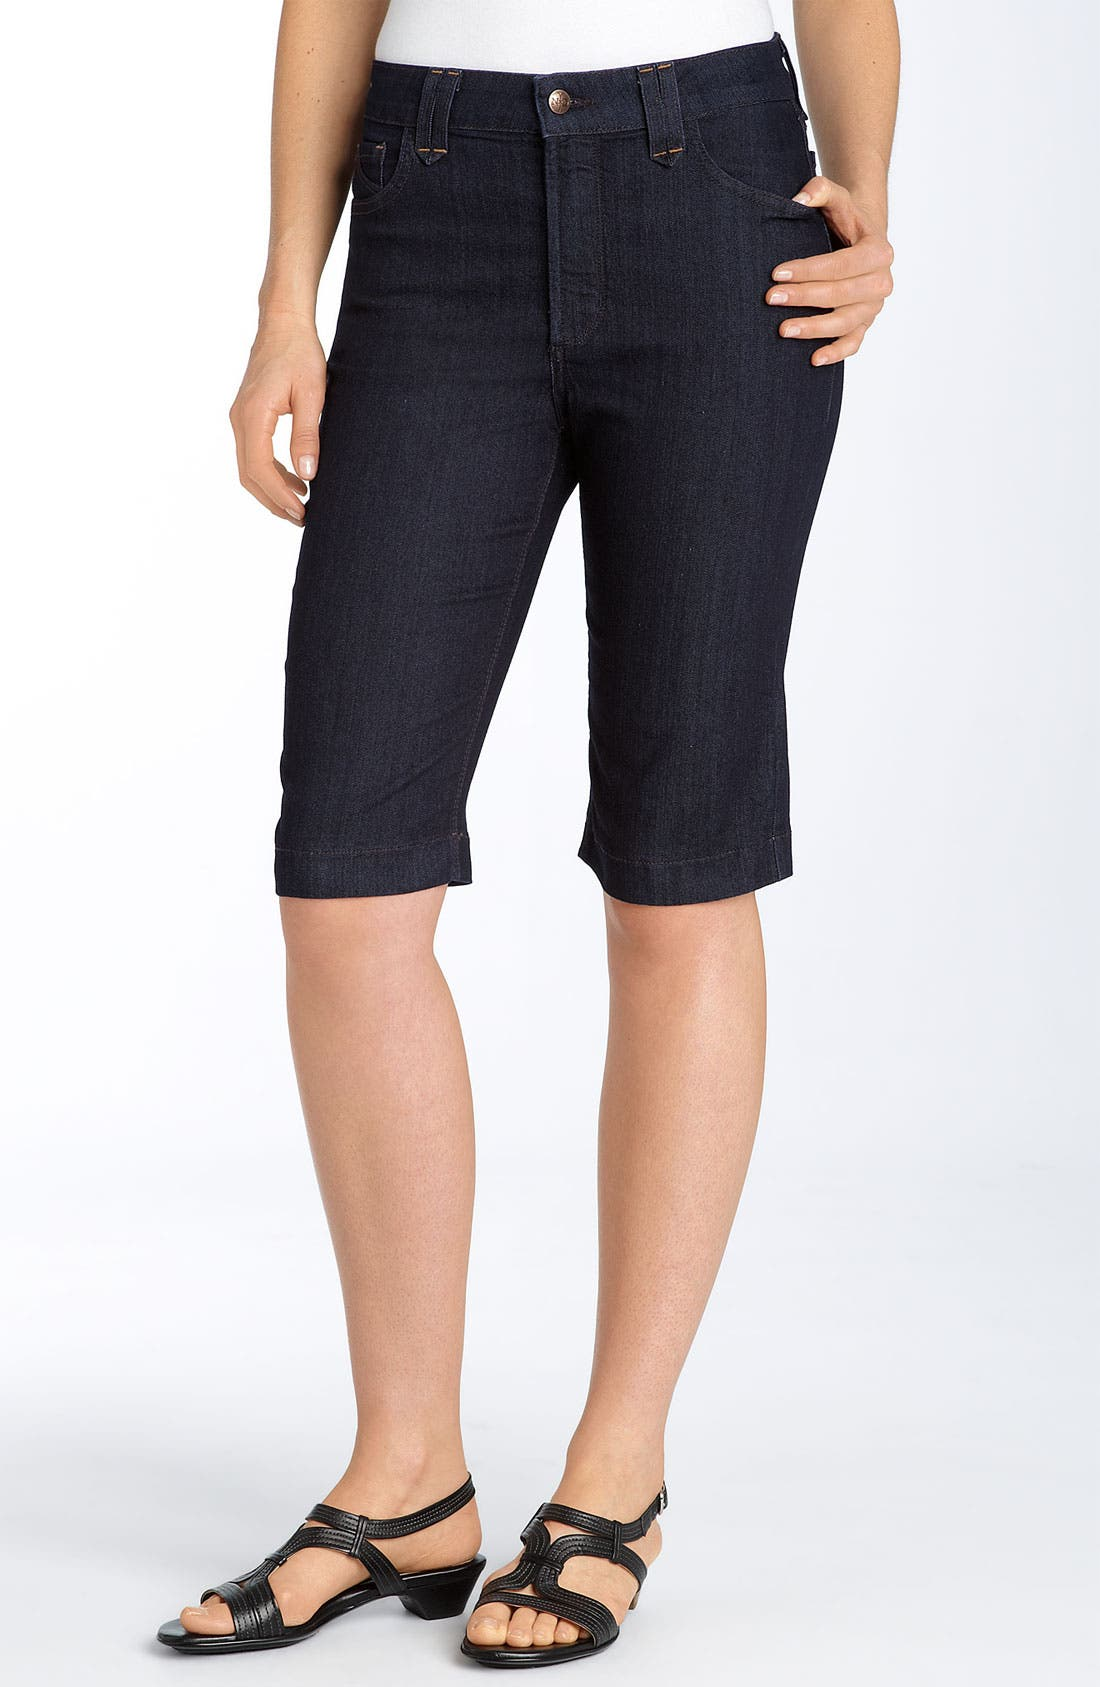 Alternate Image 1 Selected - Not Your Daughter's Jeans® 'Hayden' Walking Shorts (Plus)